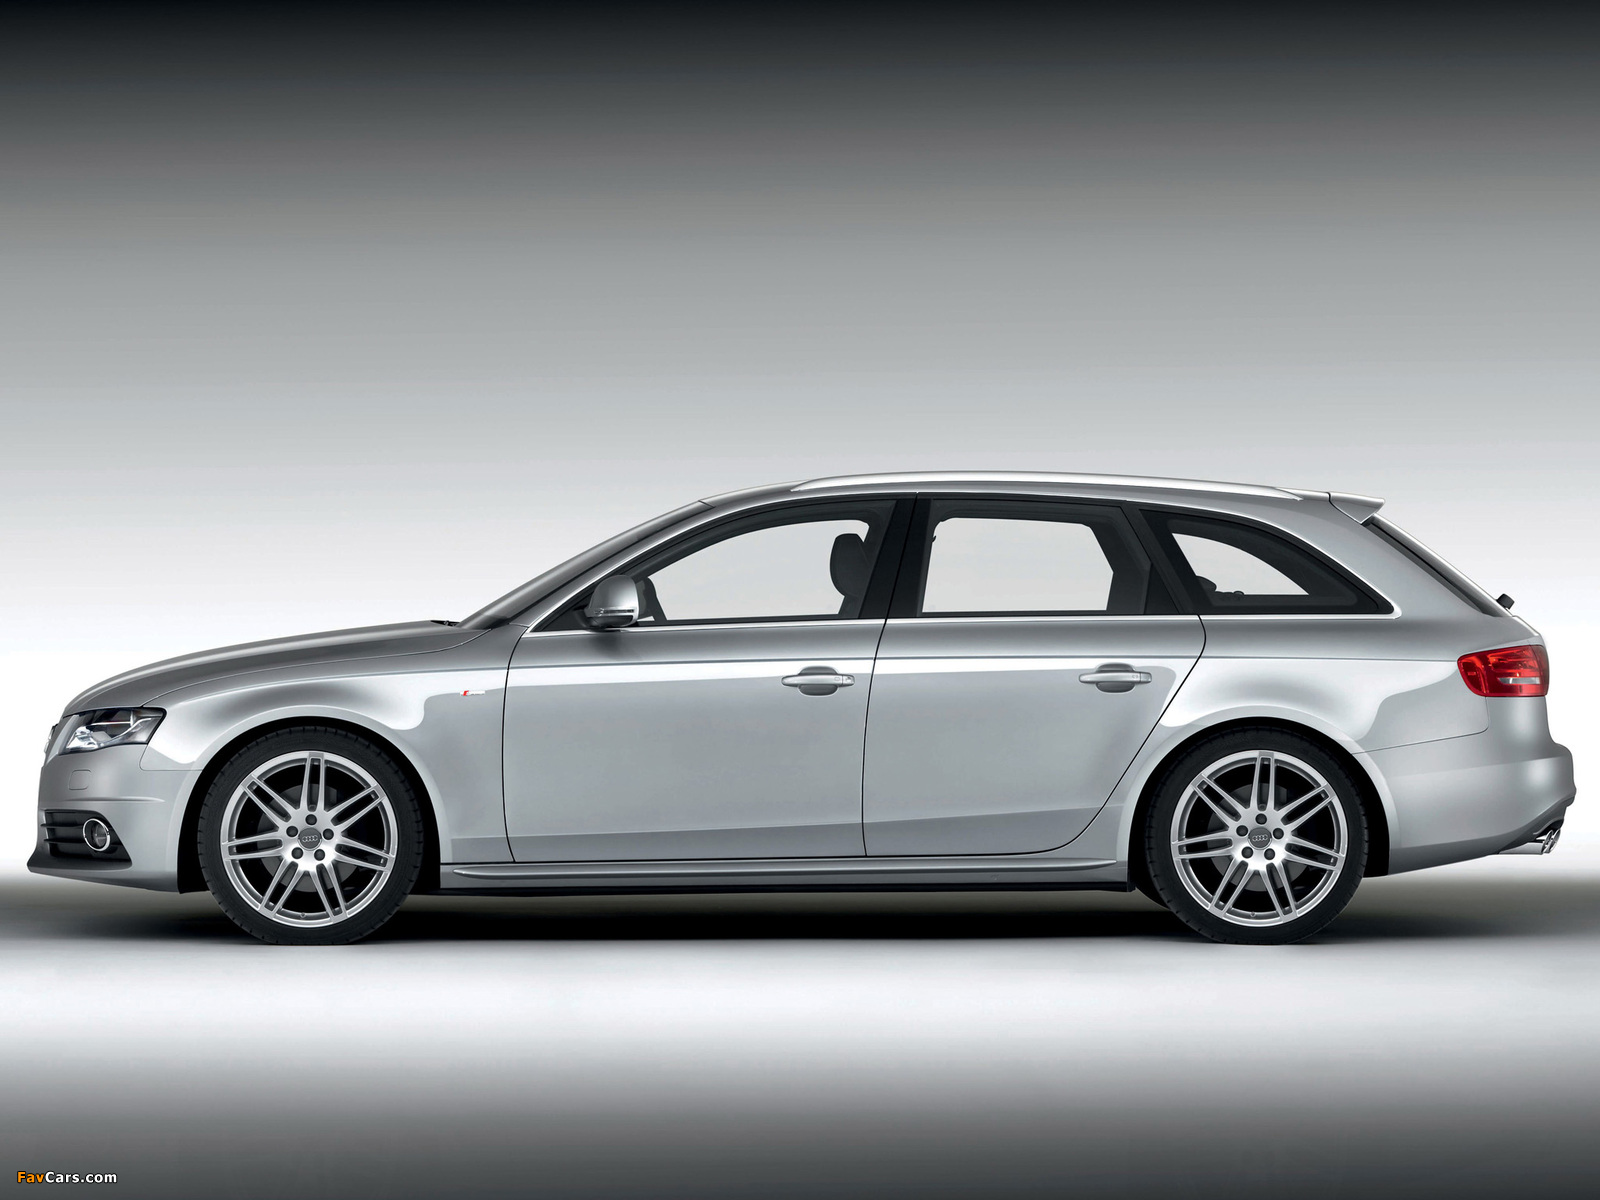 Photos Of Audi A4 1 8t S Line Avant B8 8k 2008 2011